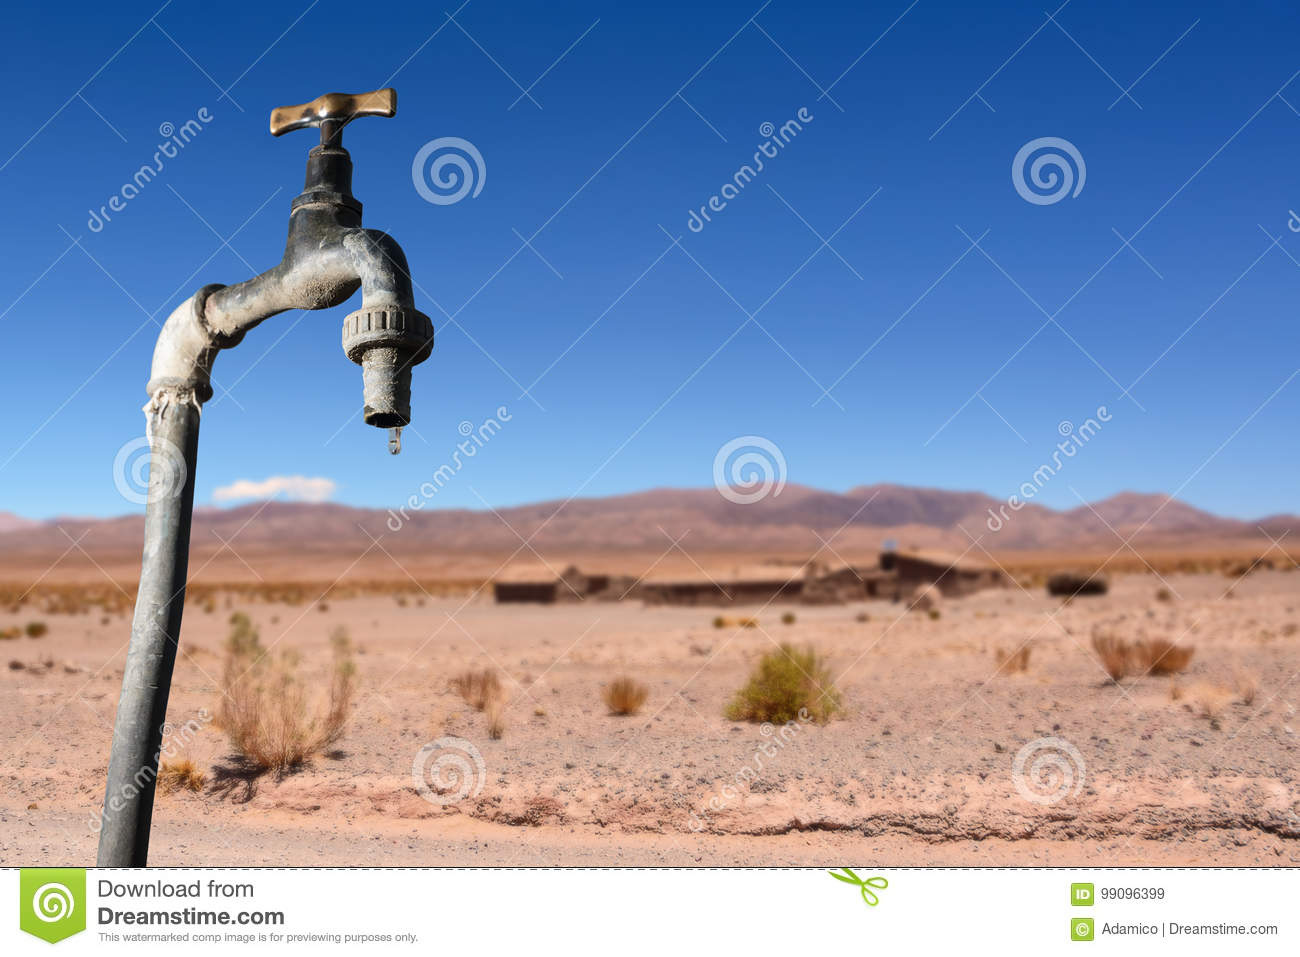 Drips faucet and dry environment in the background